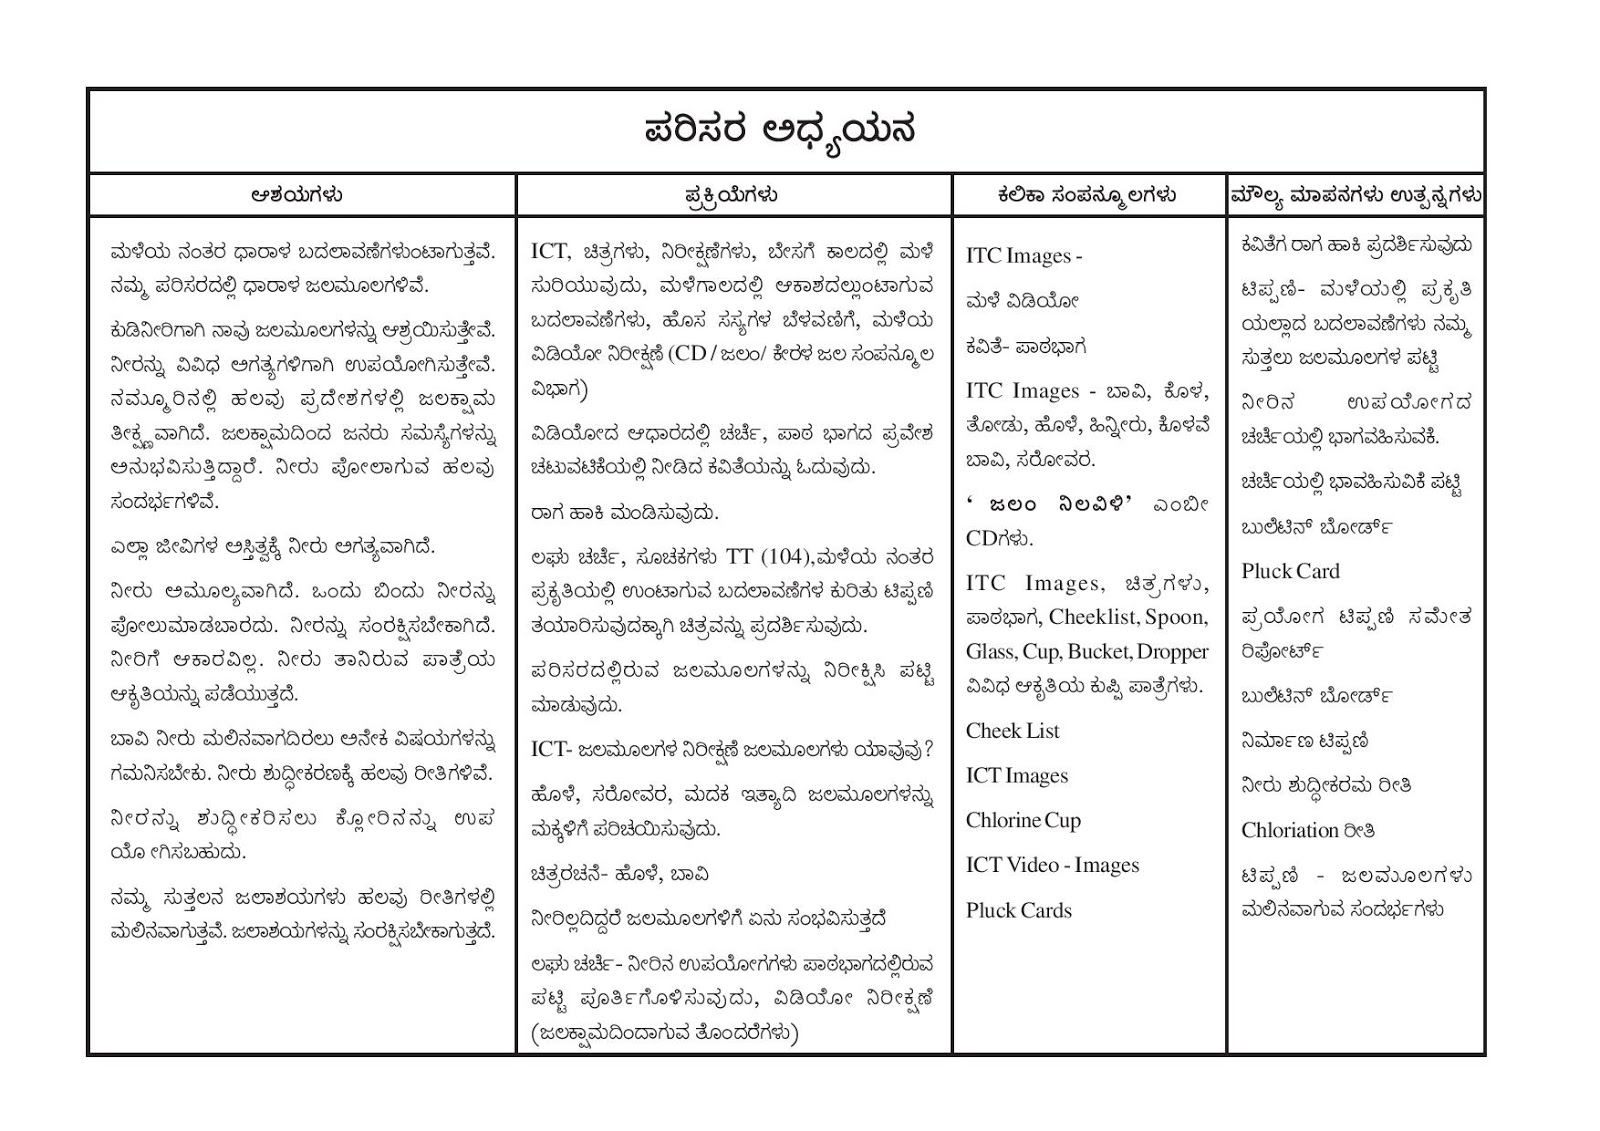 hfasbs kumbla 11351 teaching mannual model 3rd standard evs unit 3 kannada